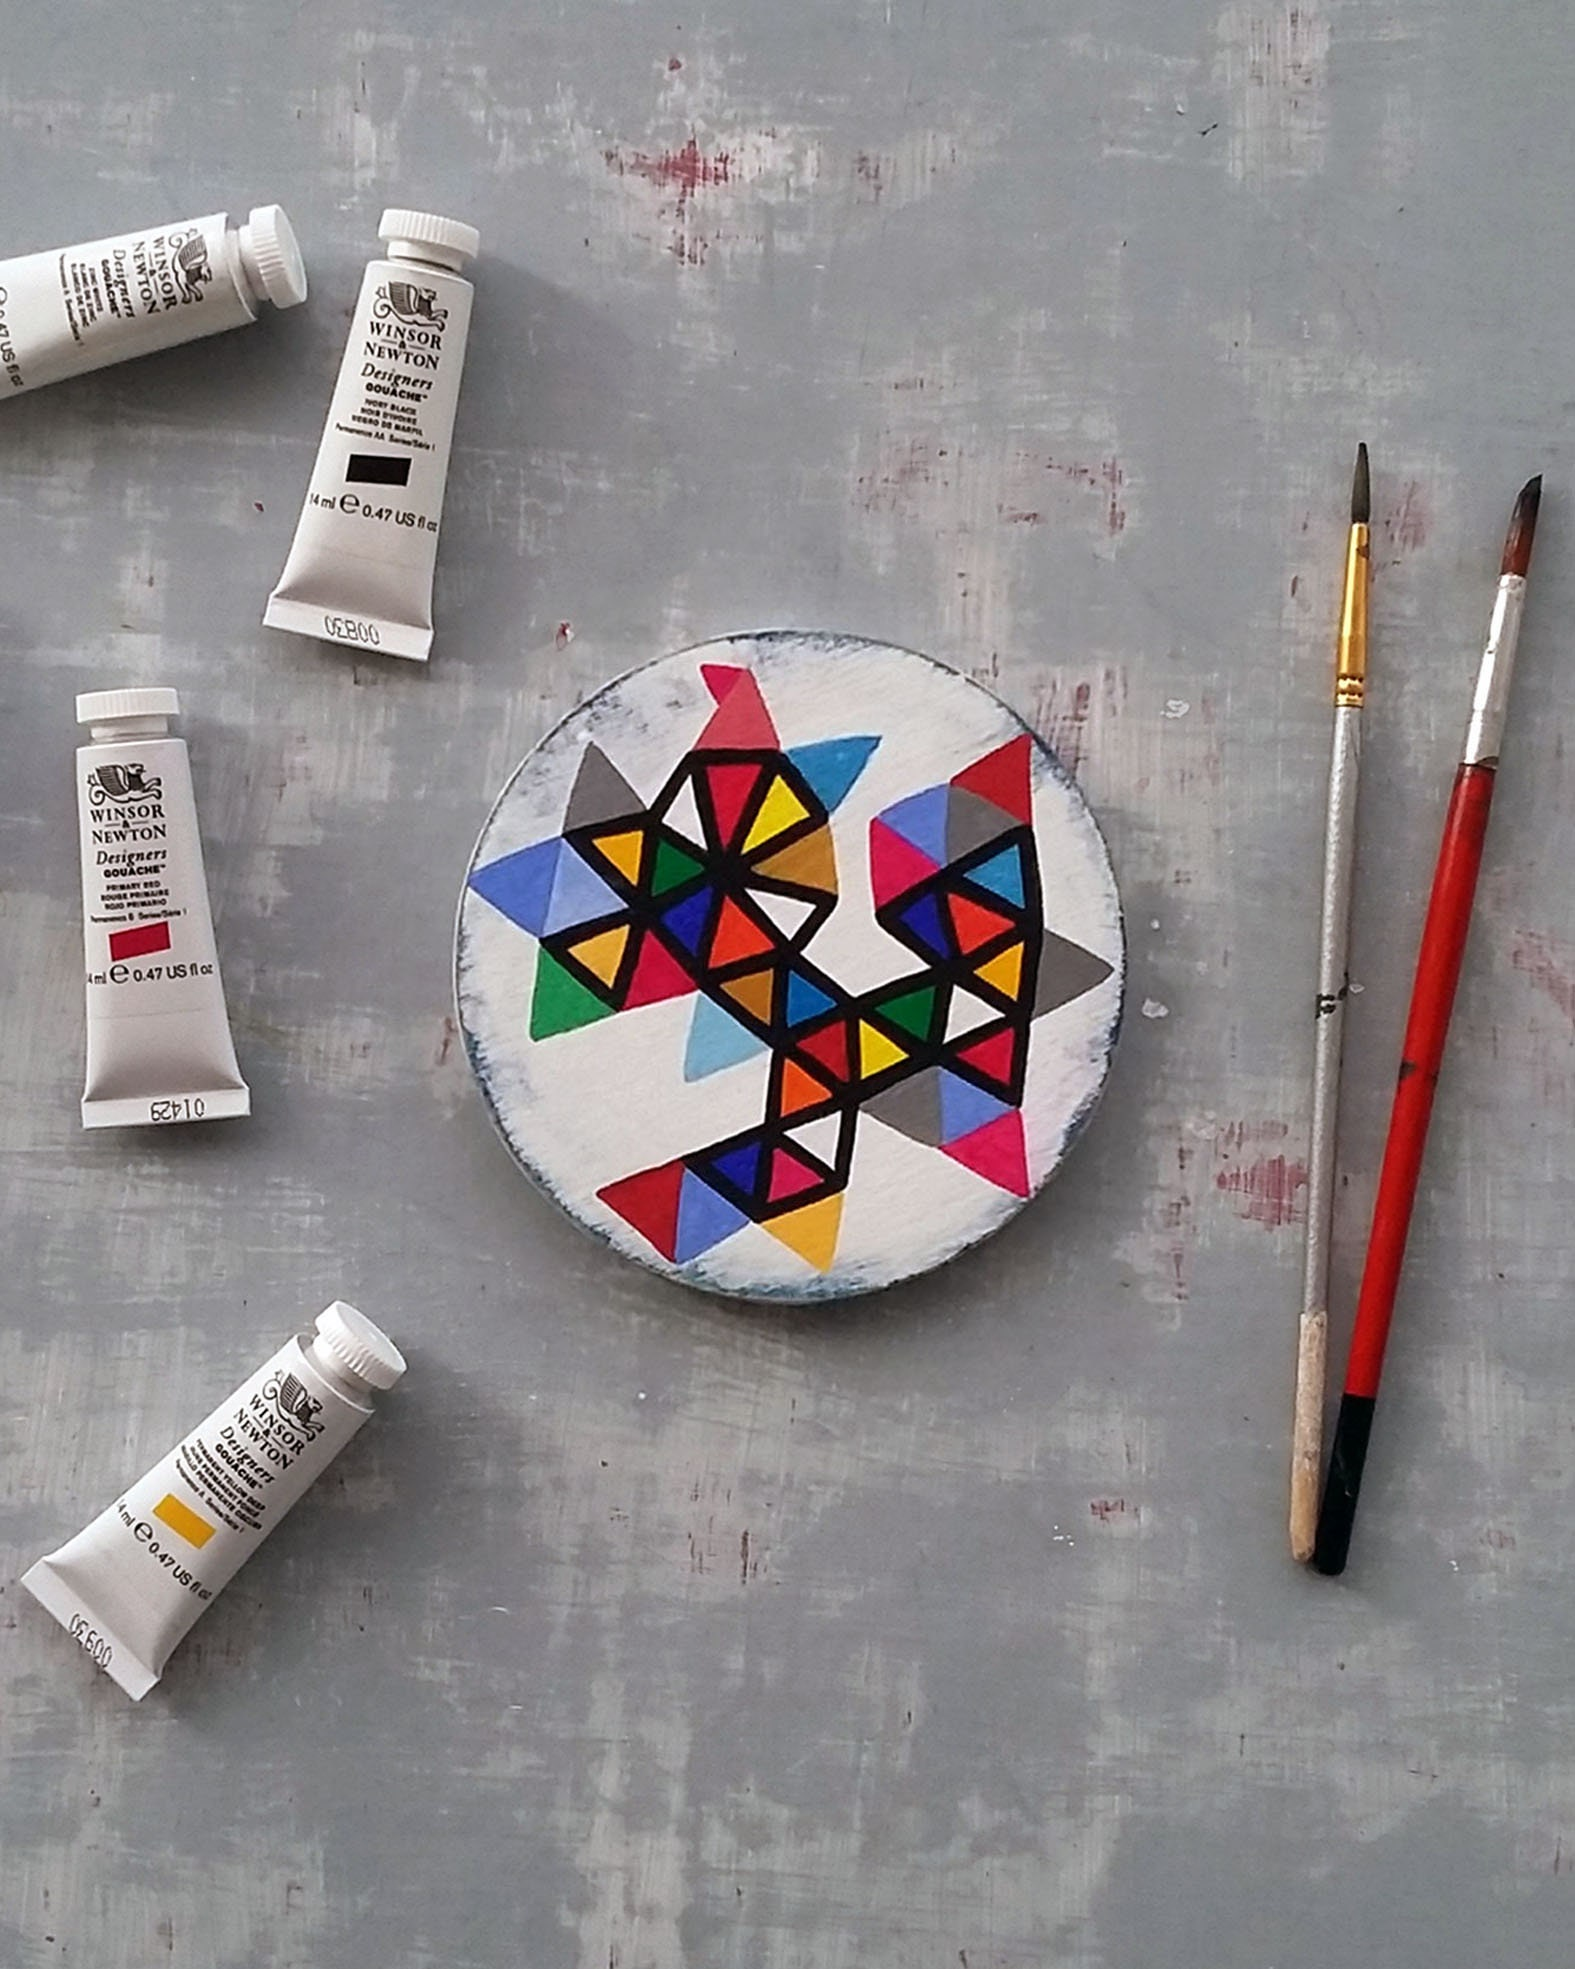 Triangles_001, geometrical miniature round painting - product image